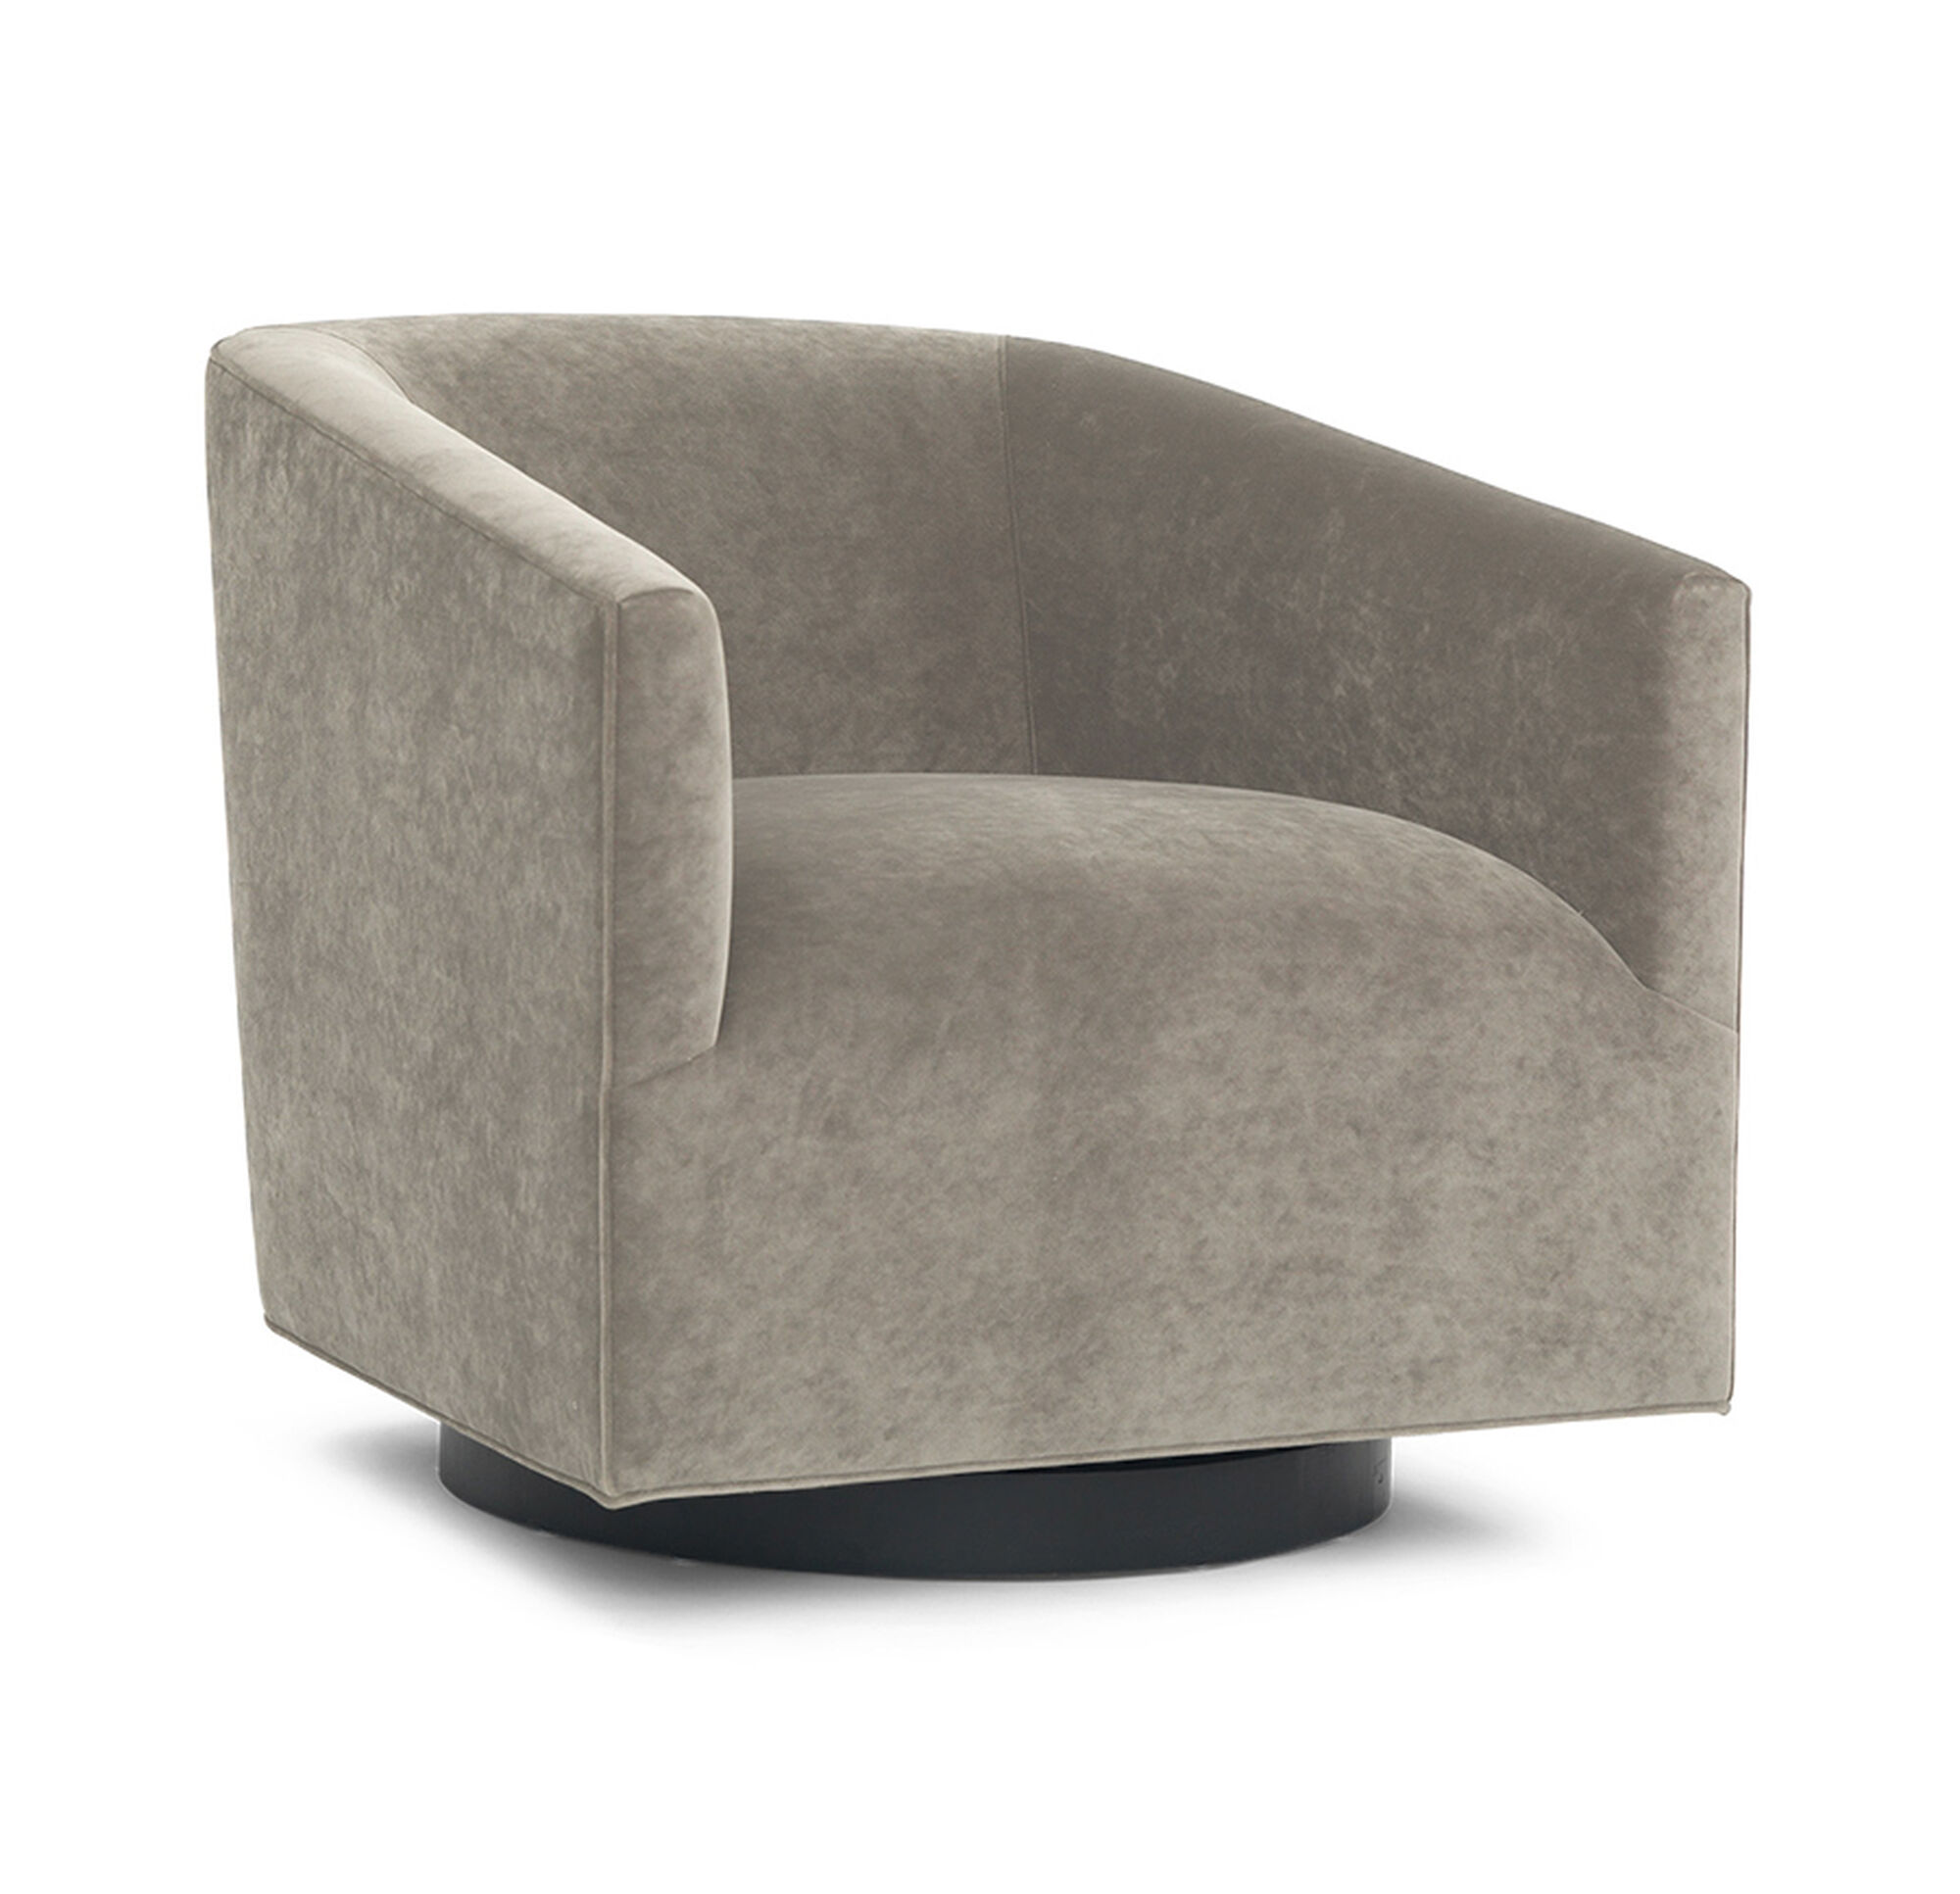 living furniture hover seating city product room gray mattresses chair value chaises to zoom swivel item chairs and cordelle